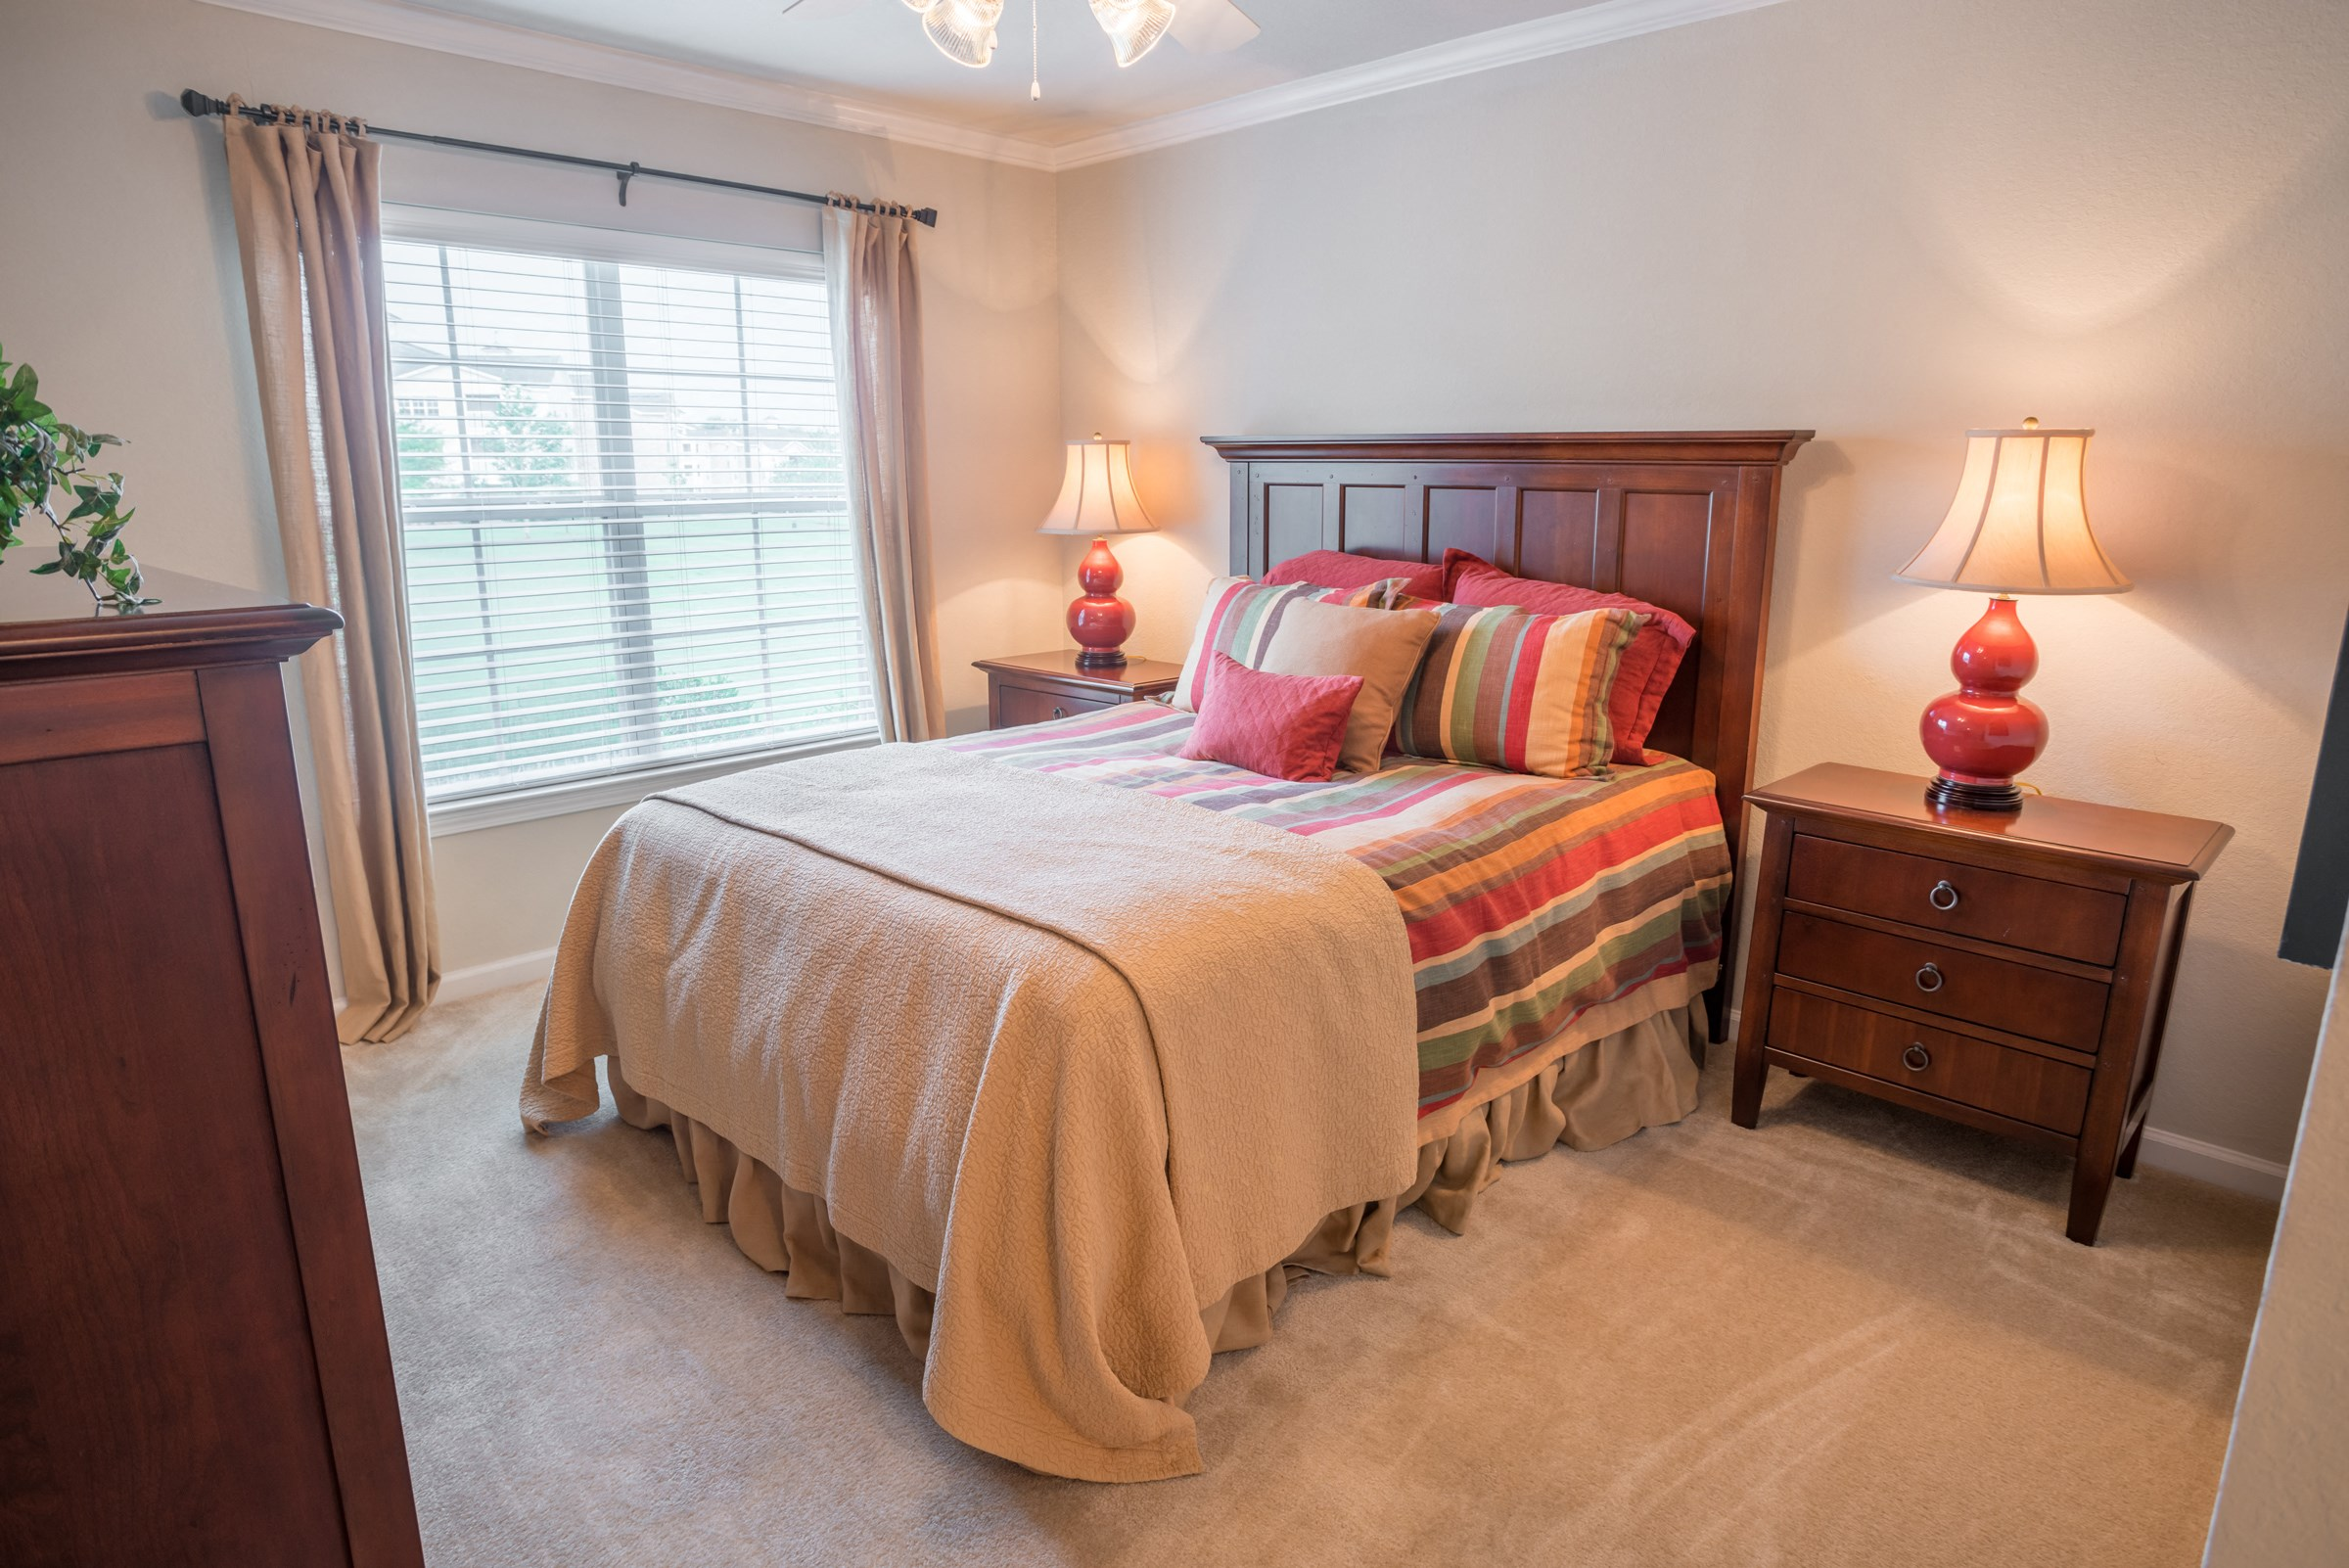 Bedroom at Verandas at Taylor Oaks Apartments in Montgomery, AL